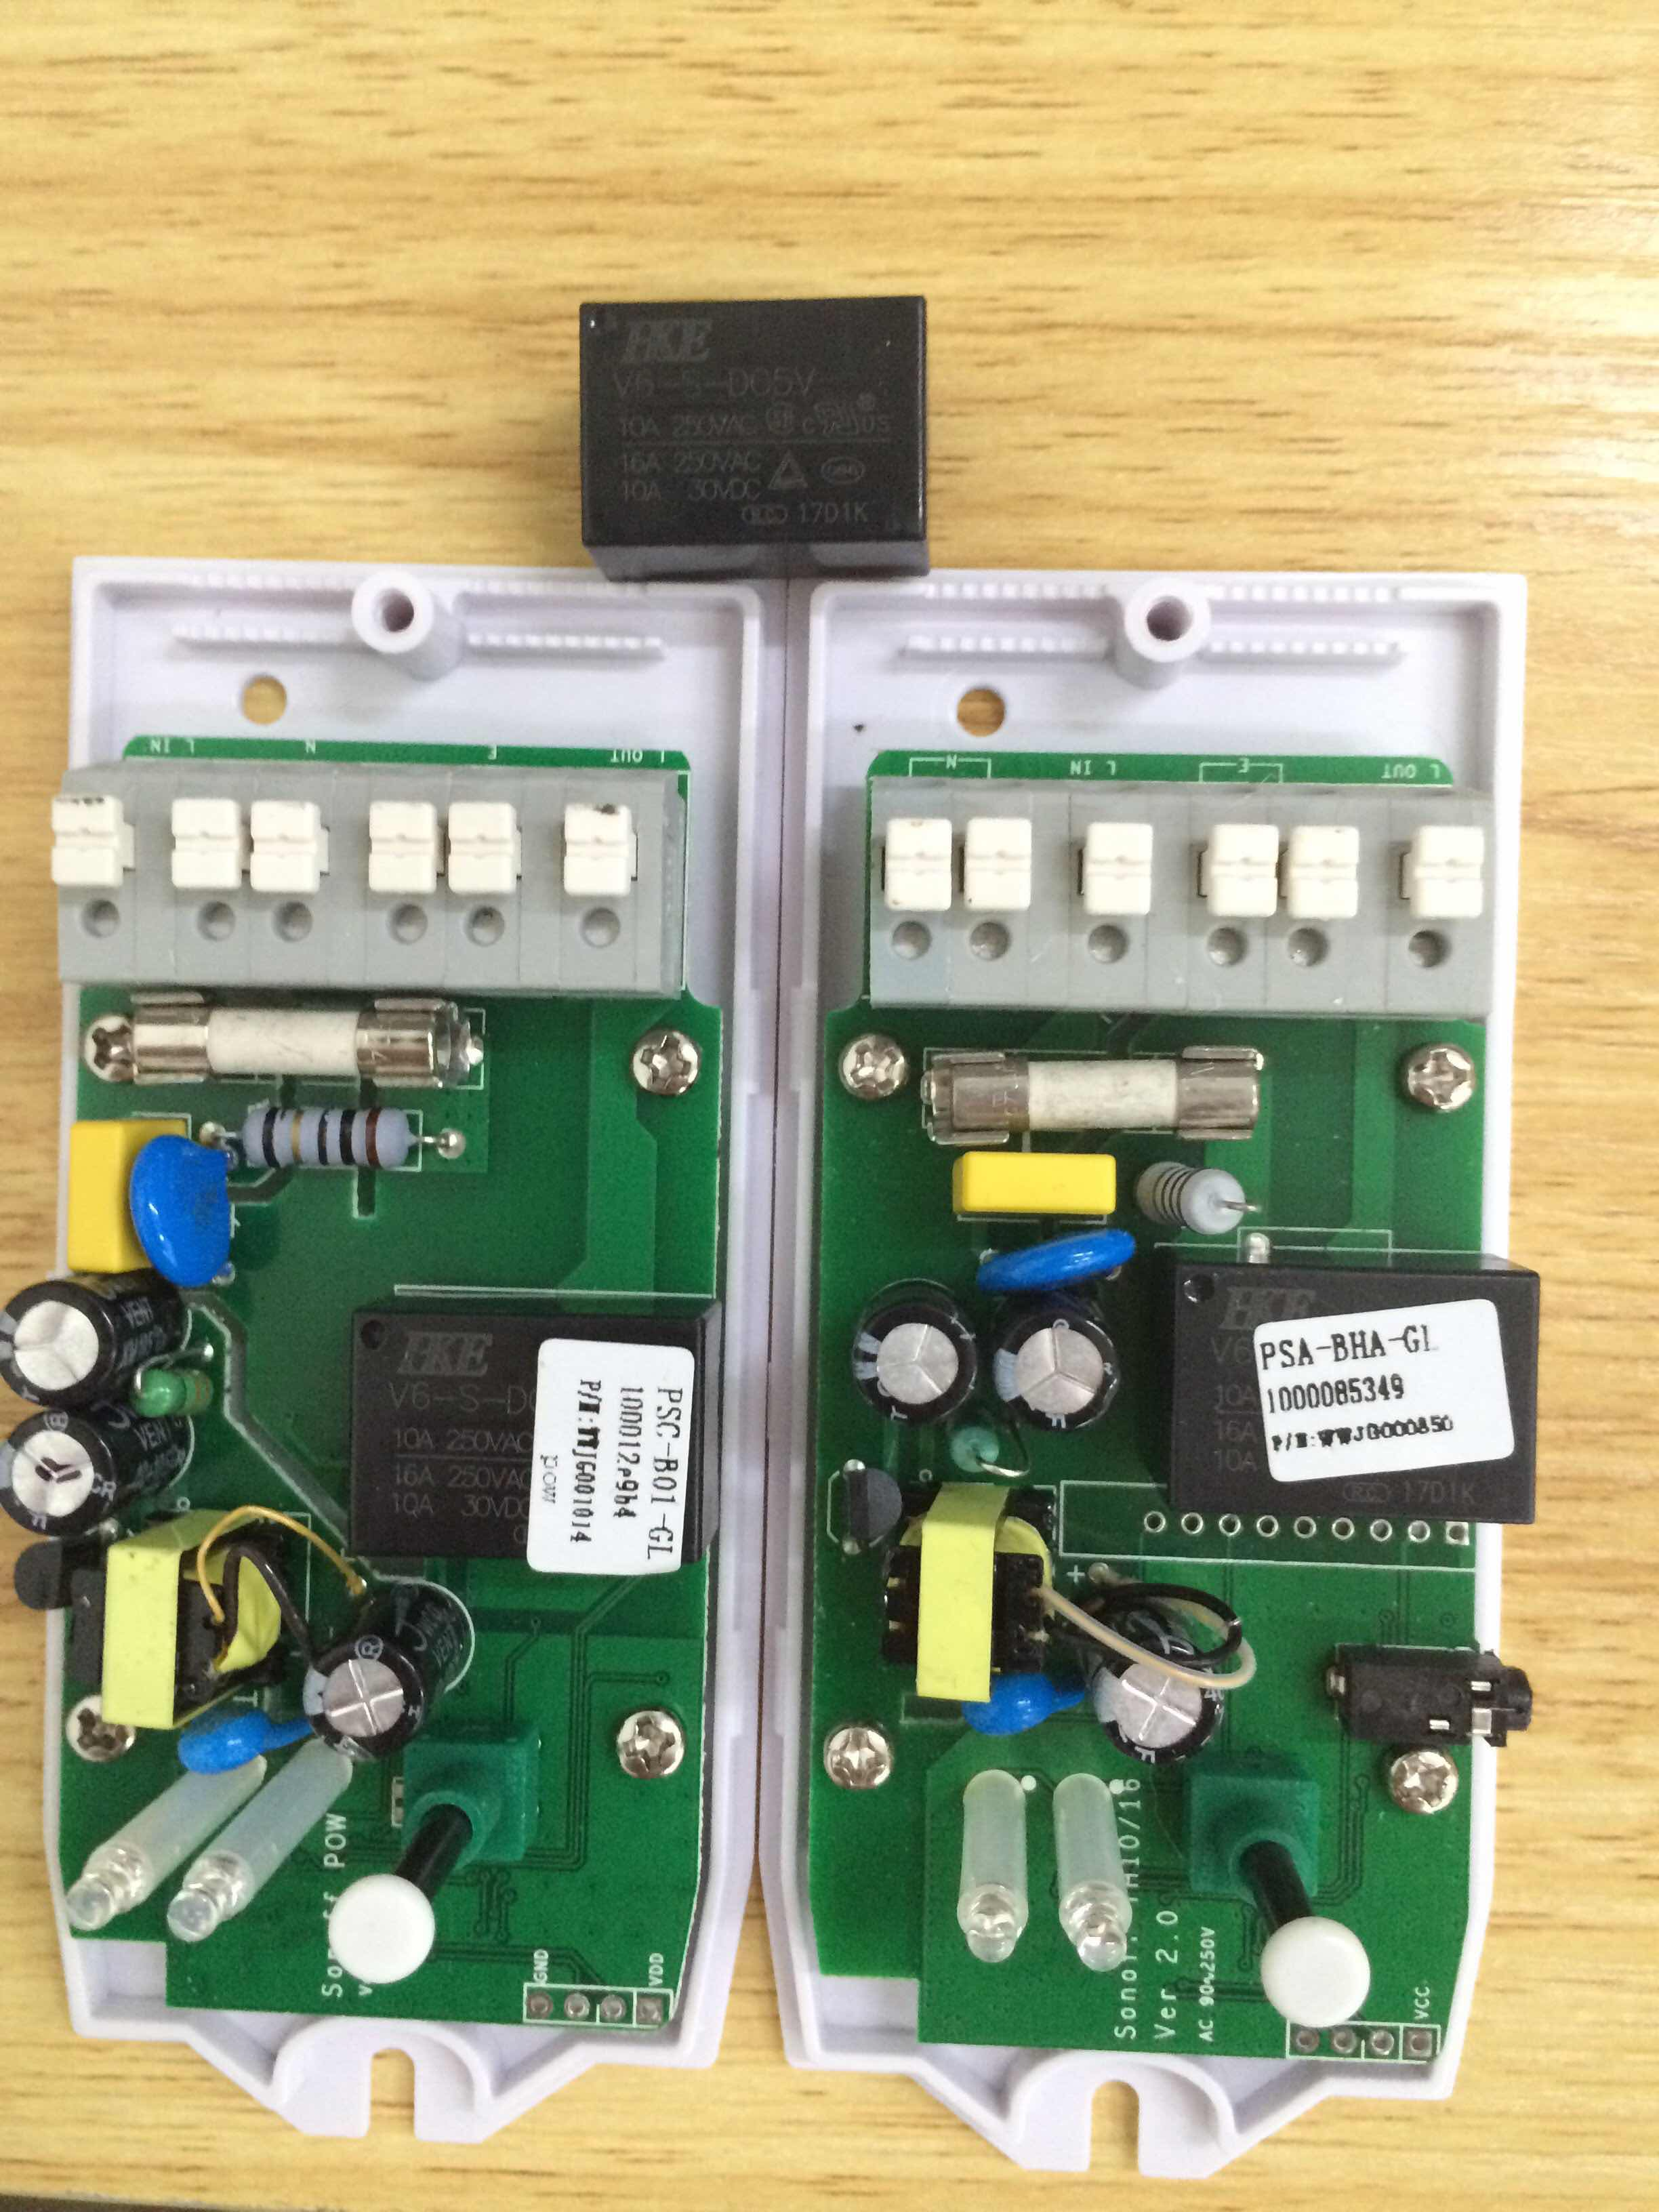 Sonoff Th10 And Th16 Scargills Tech Blog Relay Electronic Brick We Use The 16a As Wrote Please Check Picture Below You Can See Is 10 Amps Dc 16 Ac Tear White Label Paper